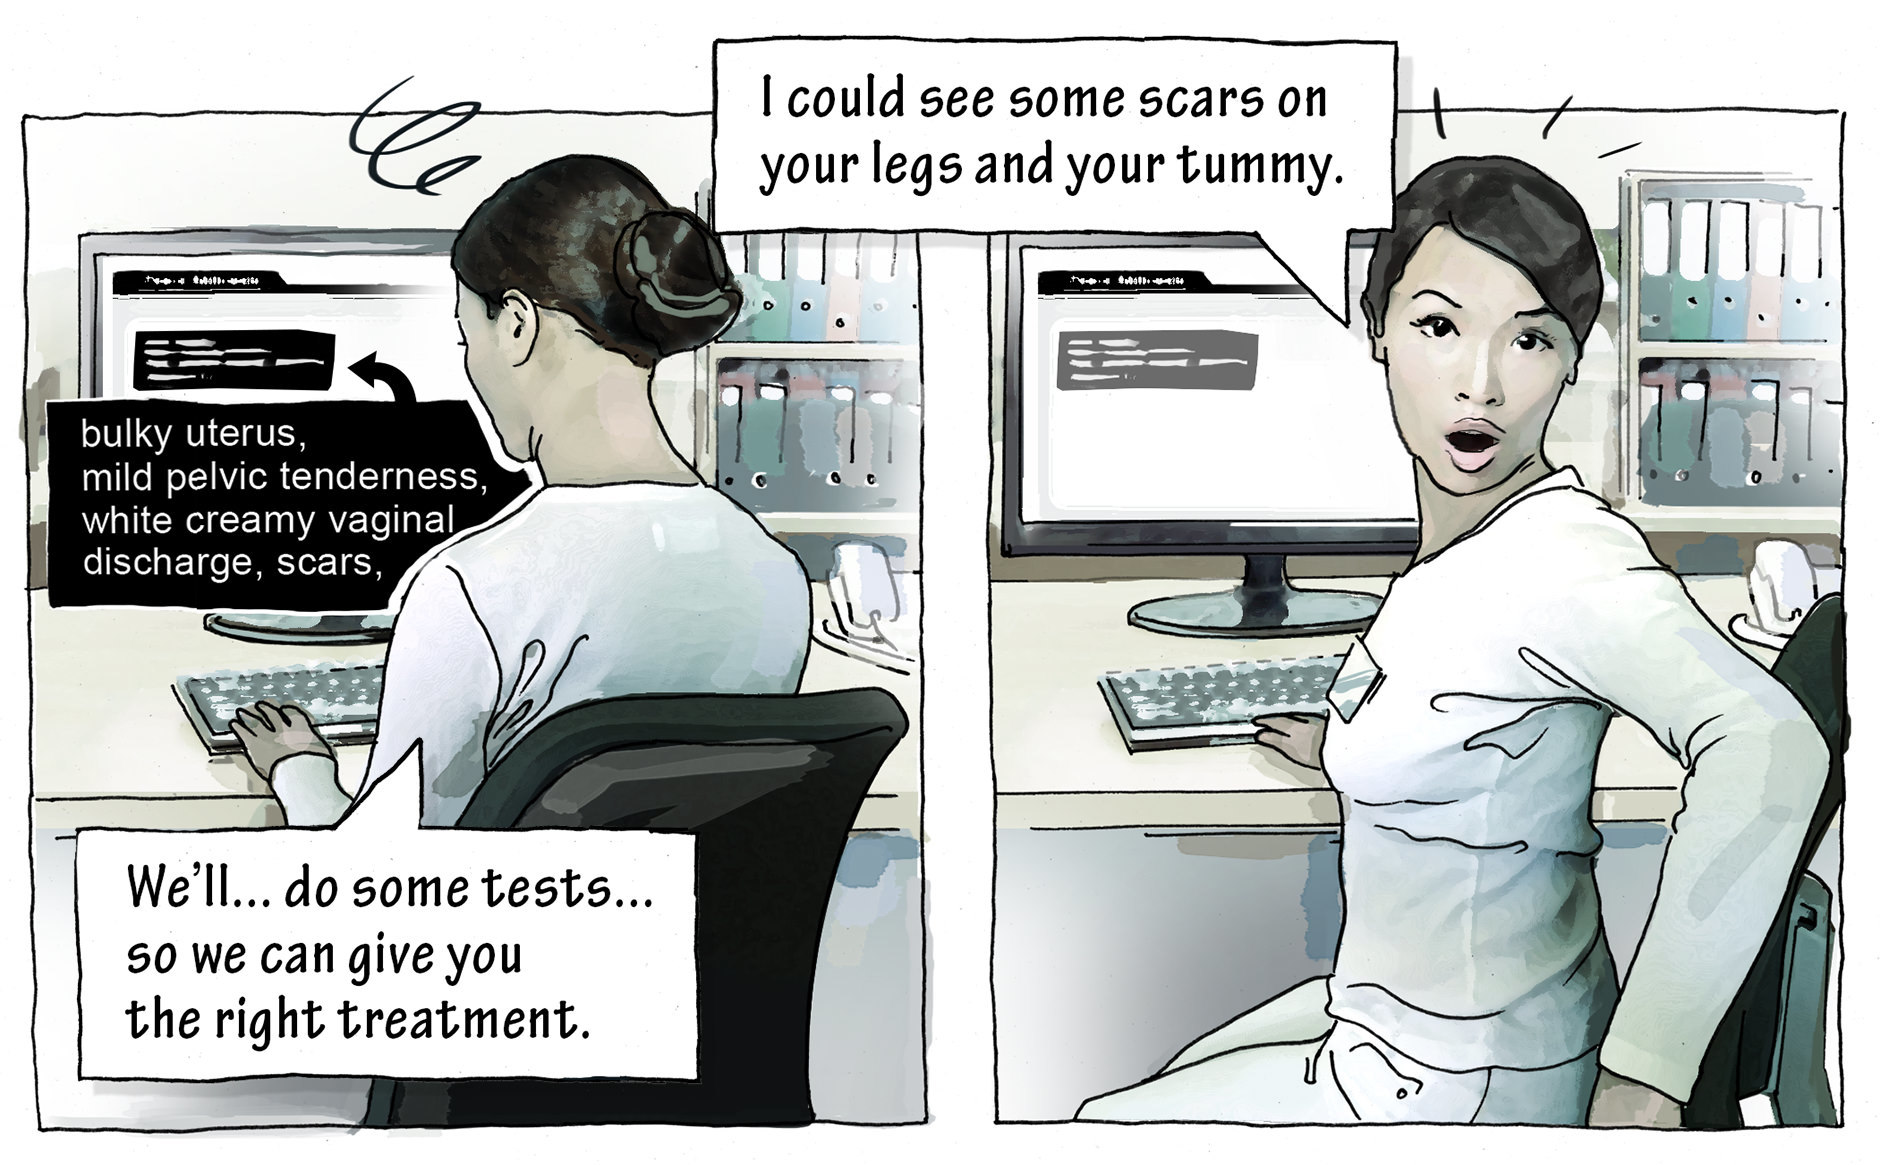 Dr. Quereshi is making notes on her computer: We'll...do some tests...so we can give you the right treatment. I could see some scars on your legs and your tummy.